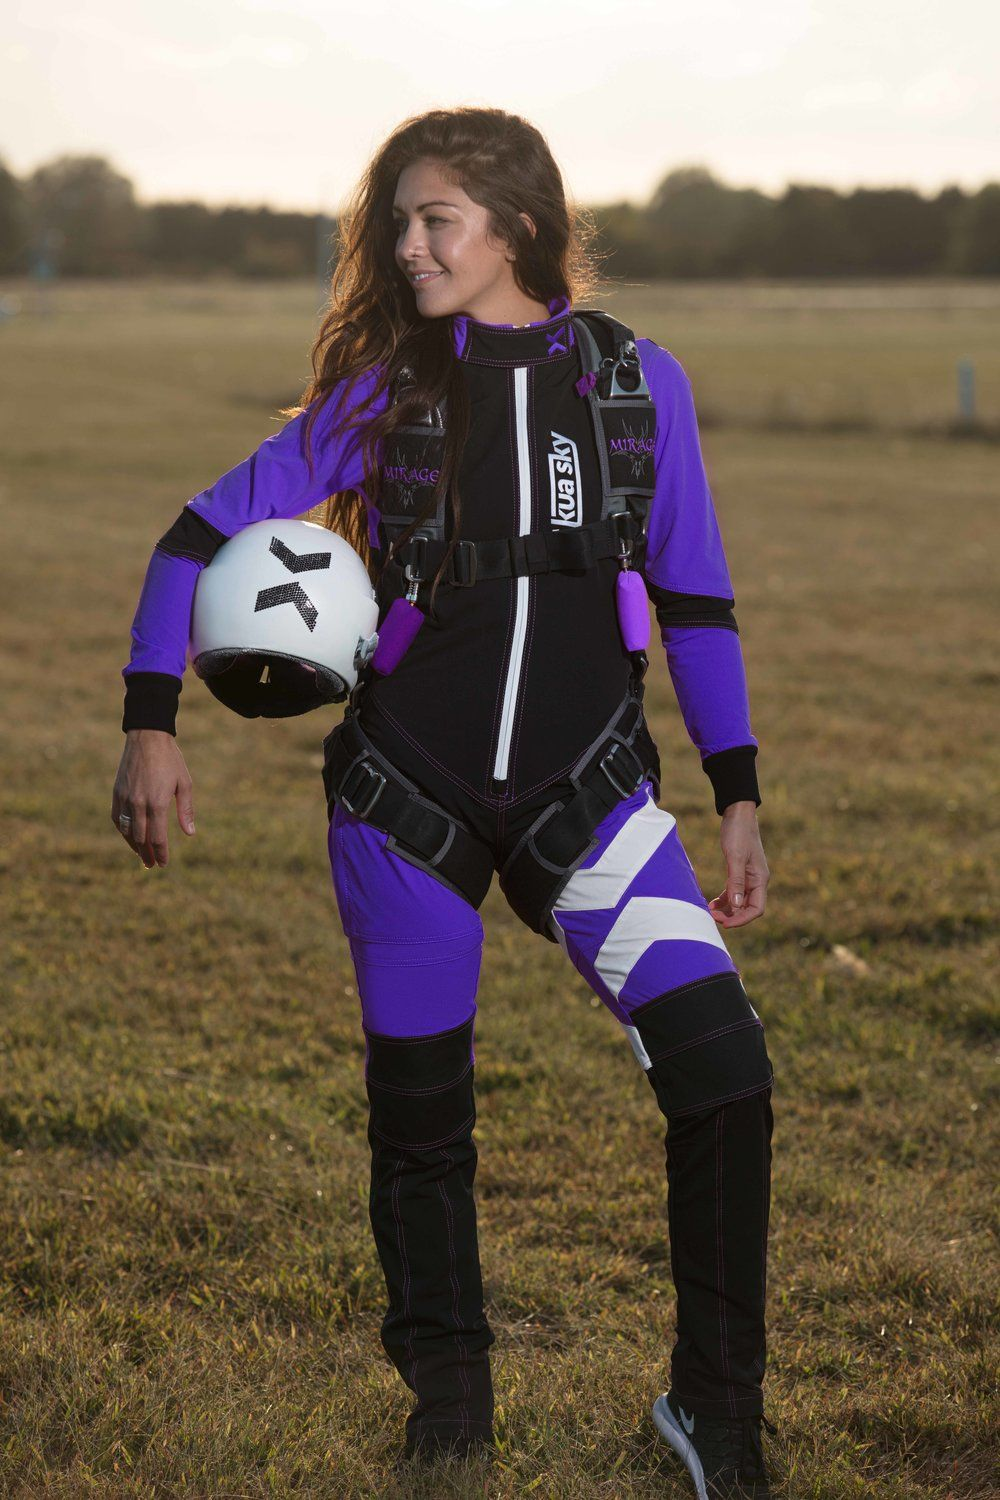 c4dae807b5c Skydiving jumpsuit in Purple. Kua Sky s Freefly Suits have been engineered  for comfort